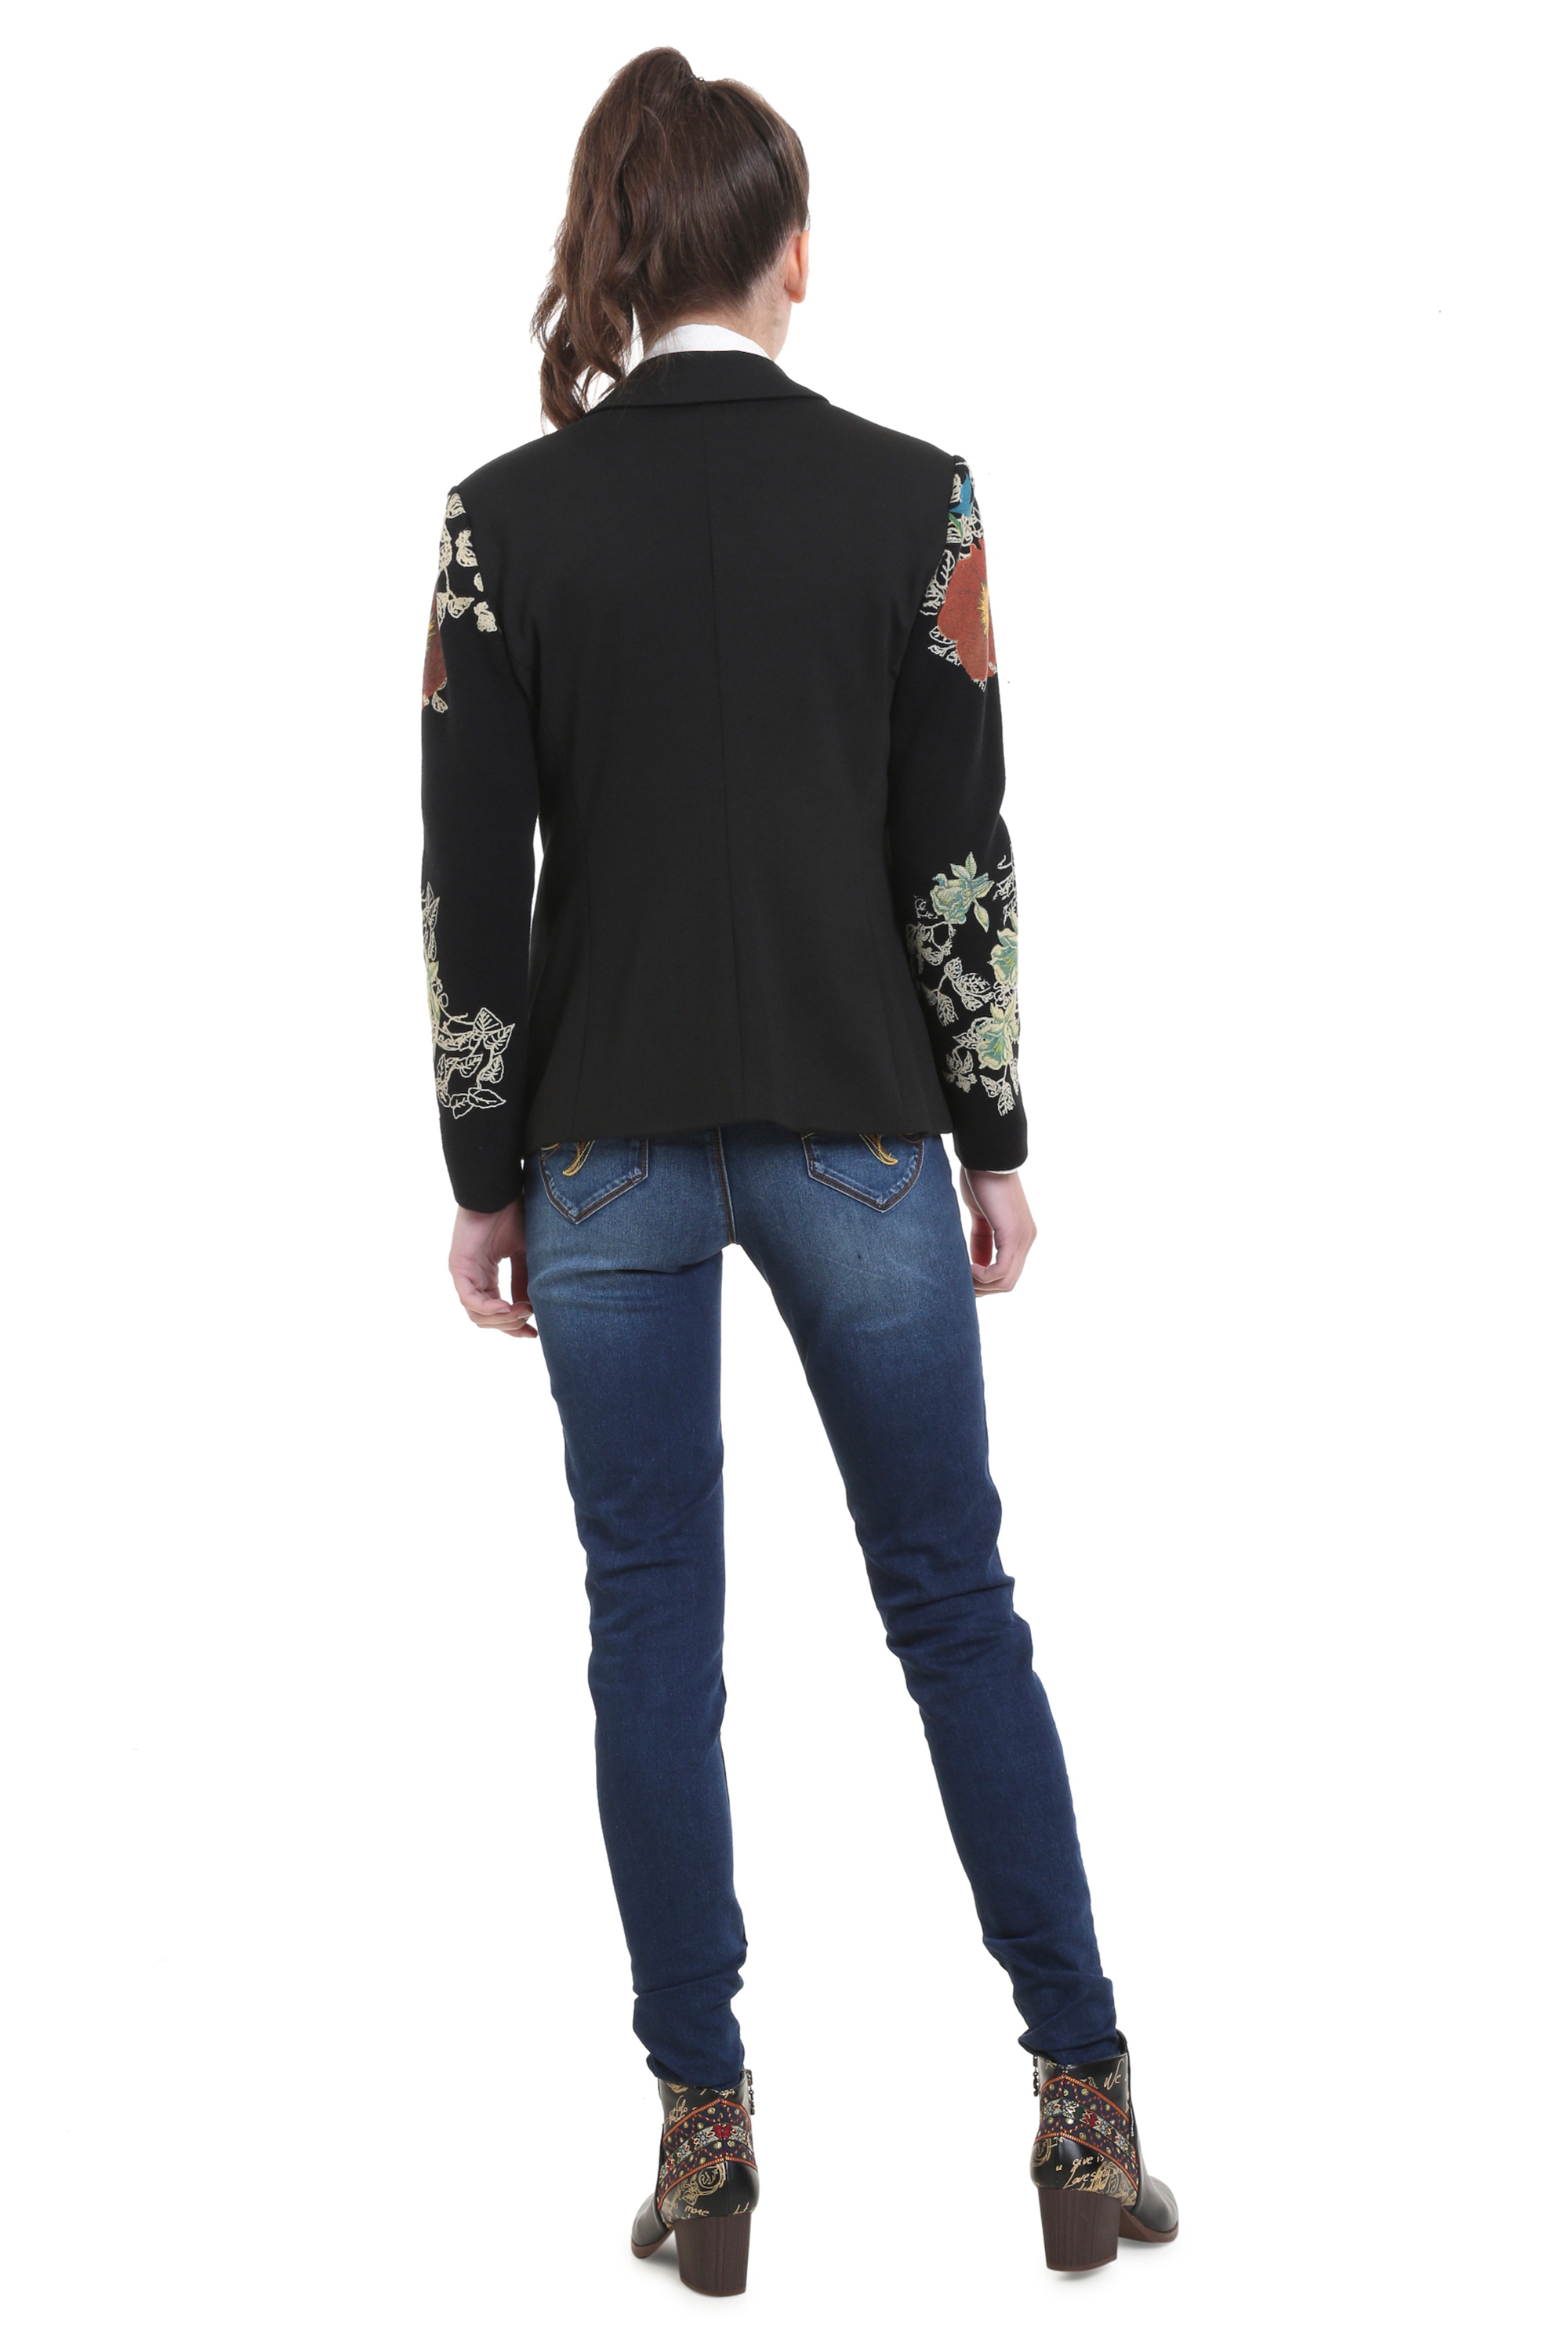 Desigual Boise Black Blazer Jacket Knit Print Sleeves 36-46 UK8-18 RRP£119